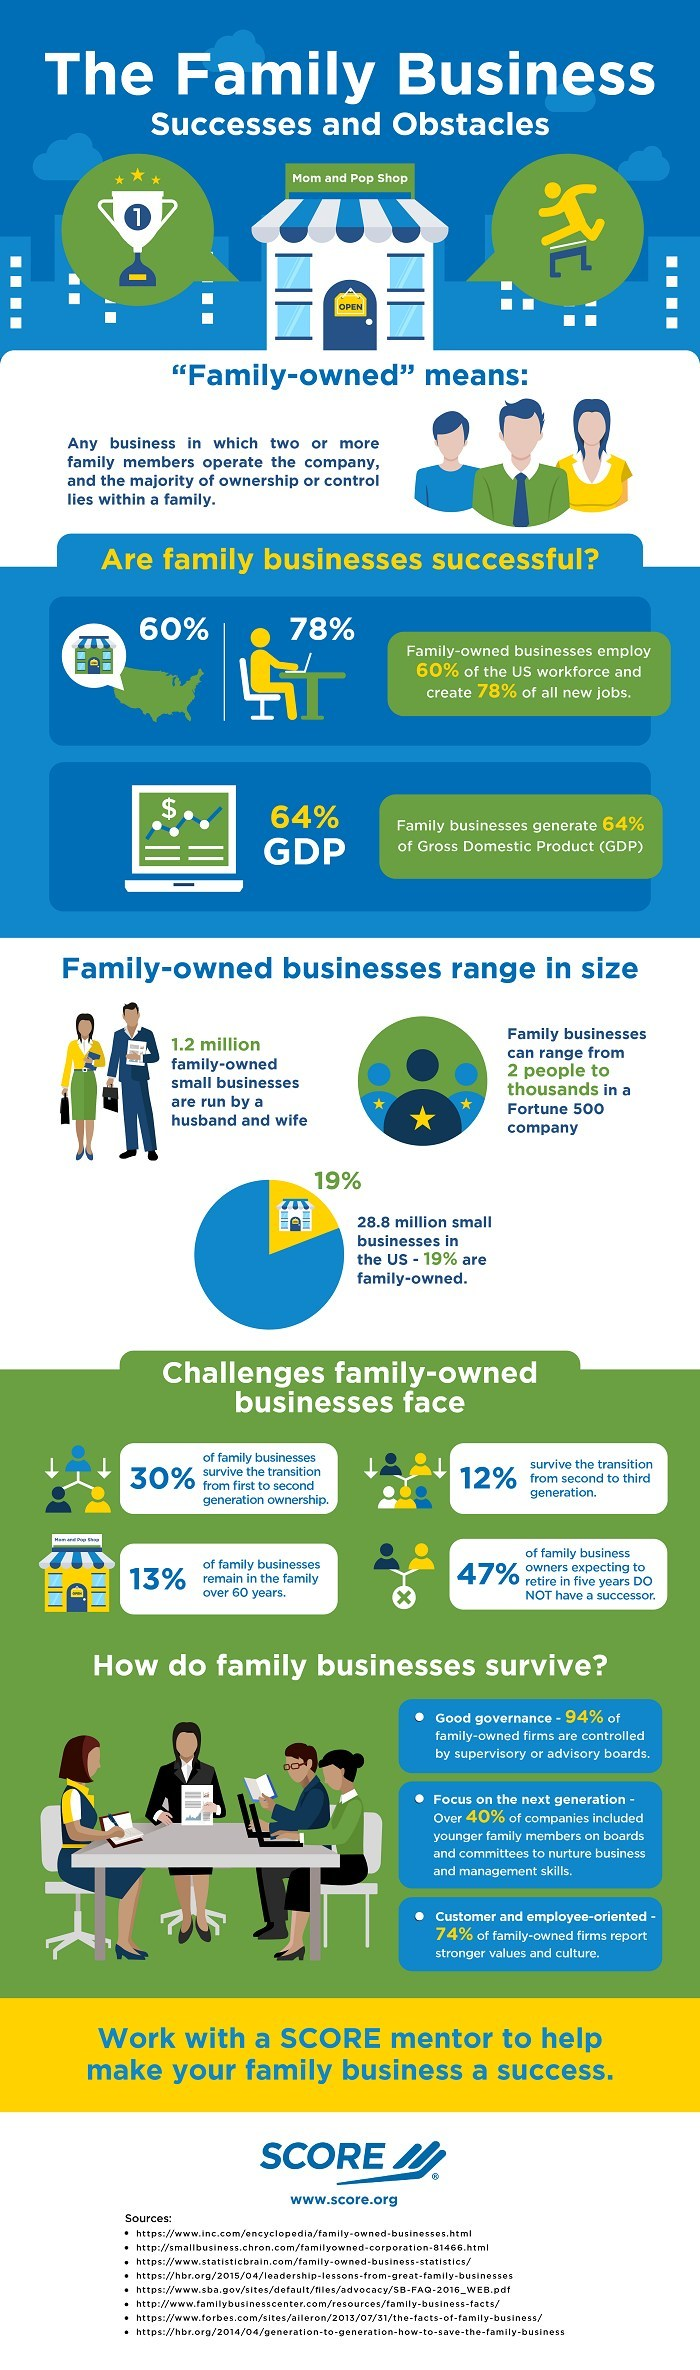 SCORE, the nation's largest network of volunteer, expert business mentors, has published a new infographic illustrating the major impact that family-owned businesses have on U.S. job creation and economic growth. Family businesses – defined as businesses operated by two or more family members, with majority ownership held within the family – employ 60% of the U.S. workforce and create 78% of all new jobs. Altogether, family-owned businesses generate 64% of the gross domestic product (GDP).